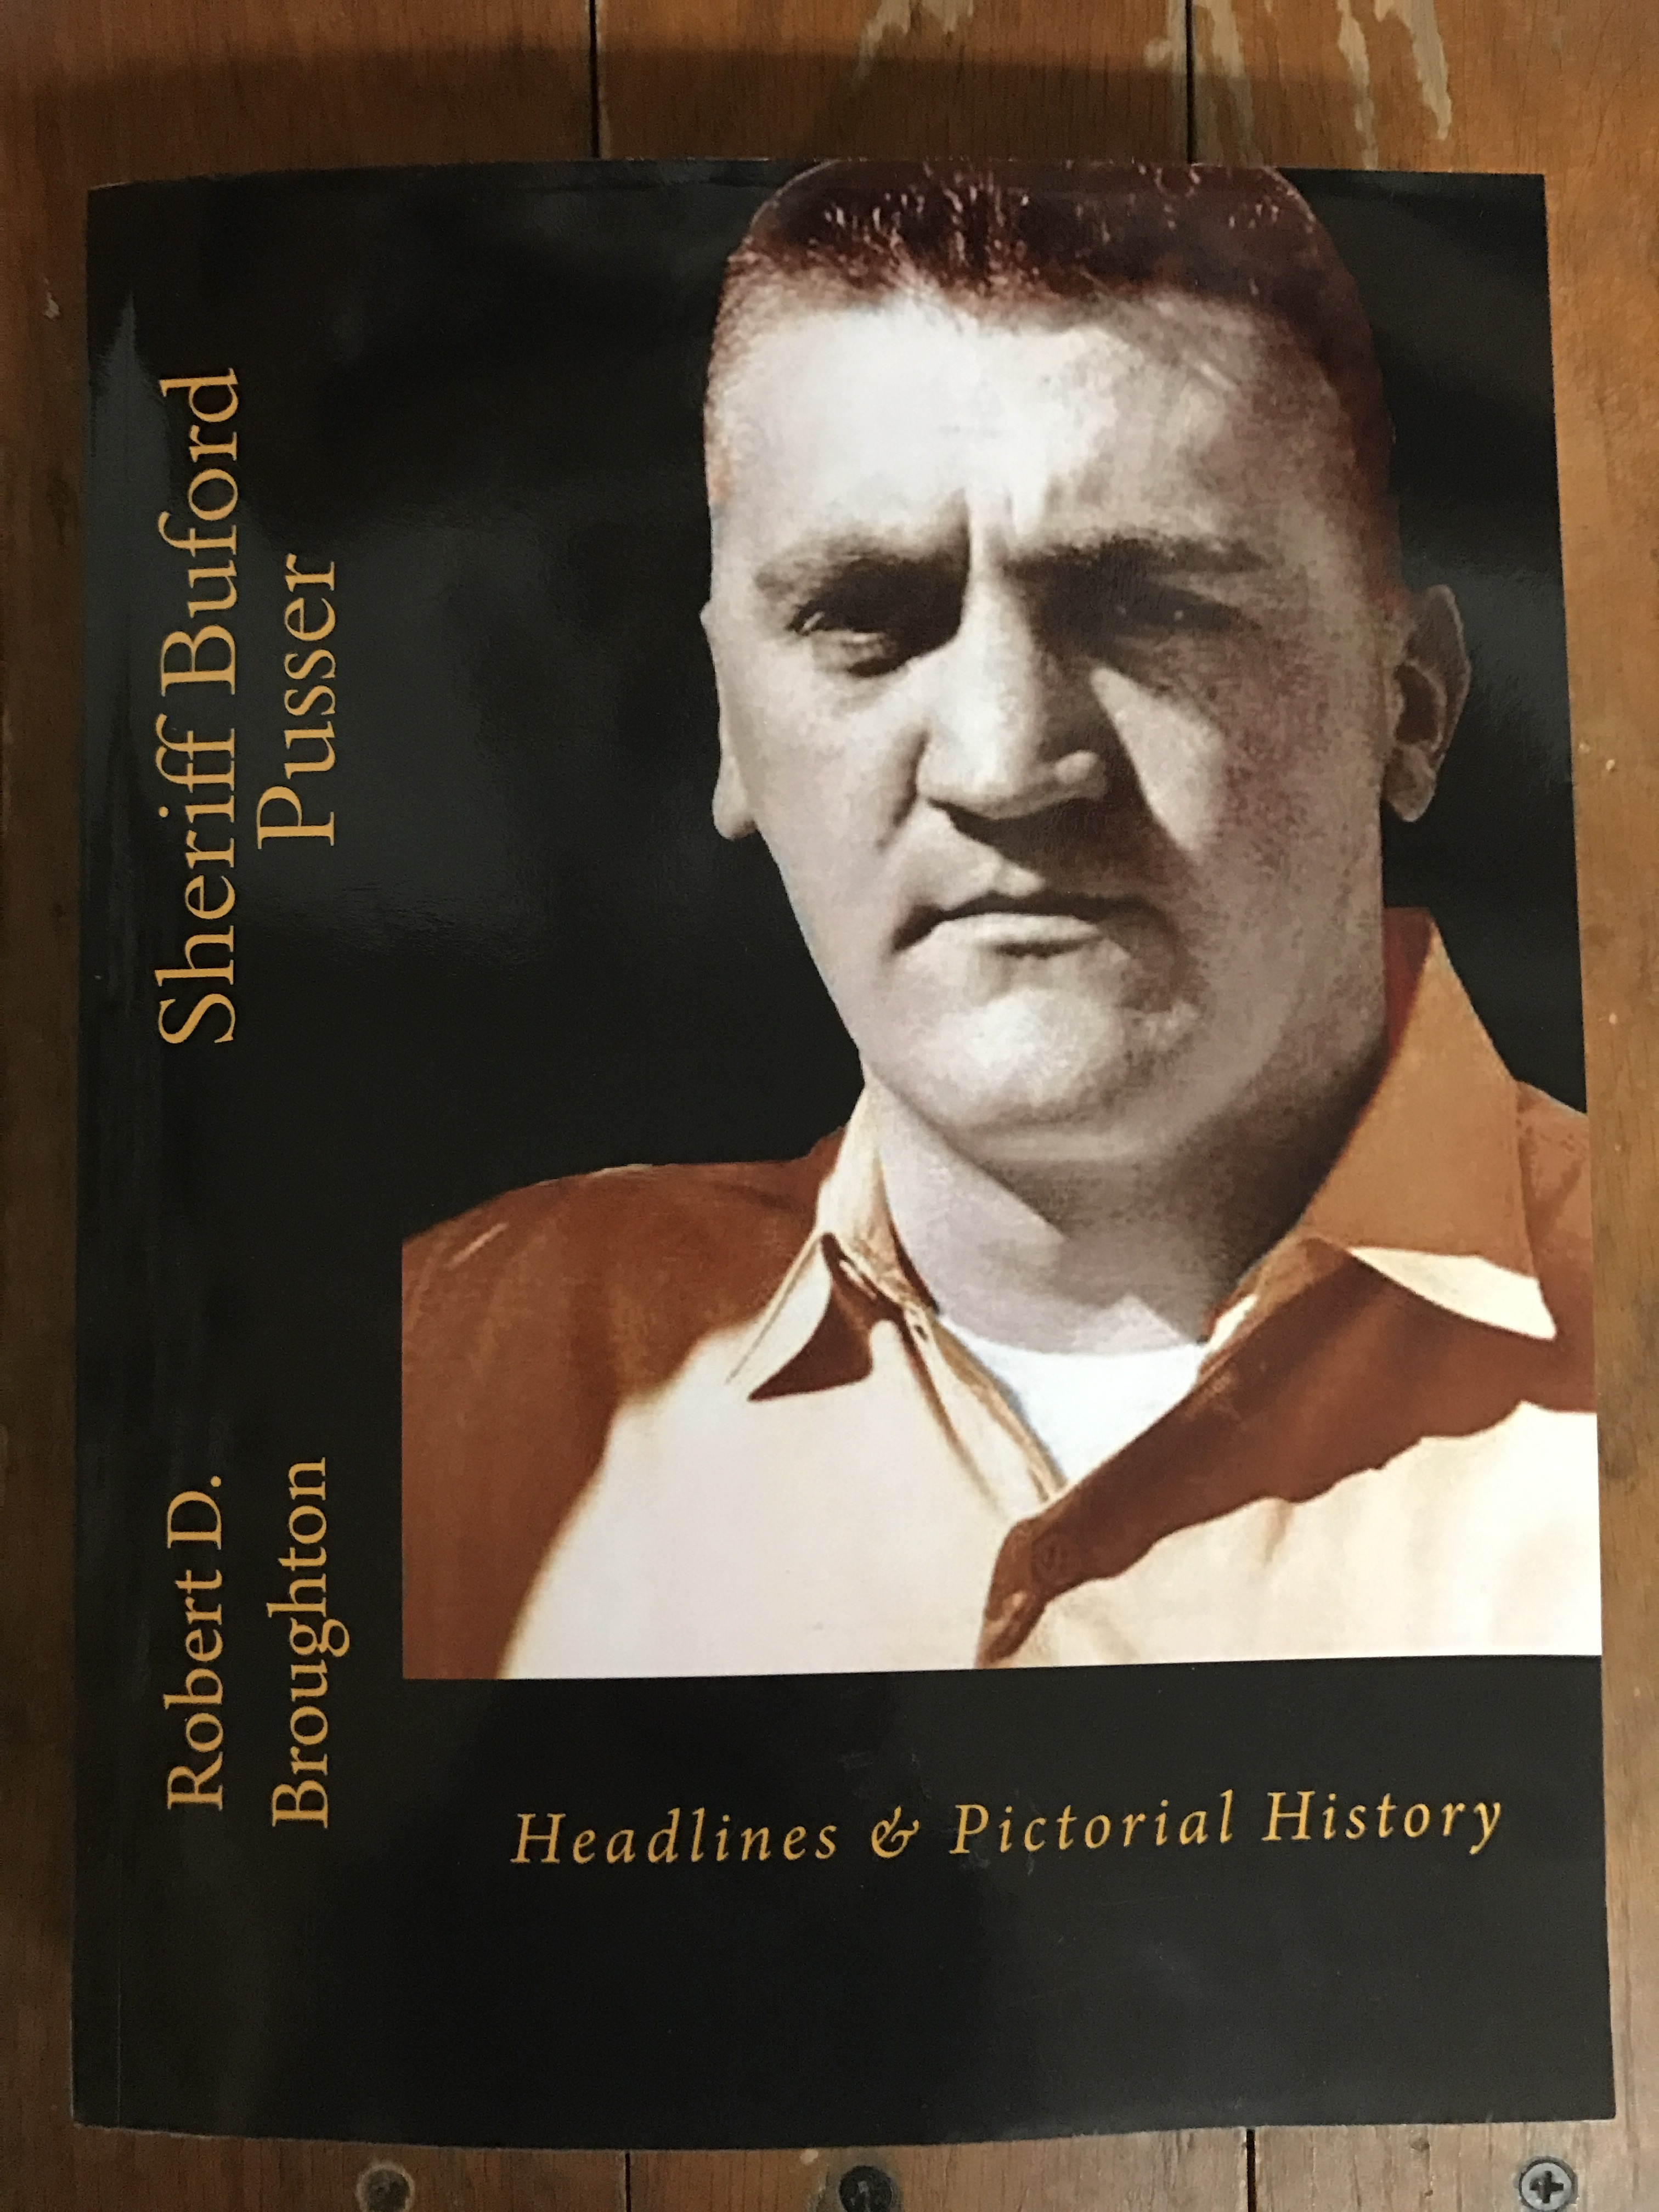 Sheriff Buford Pusser Headlines & Pictorial